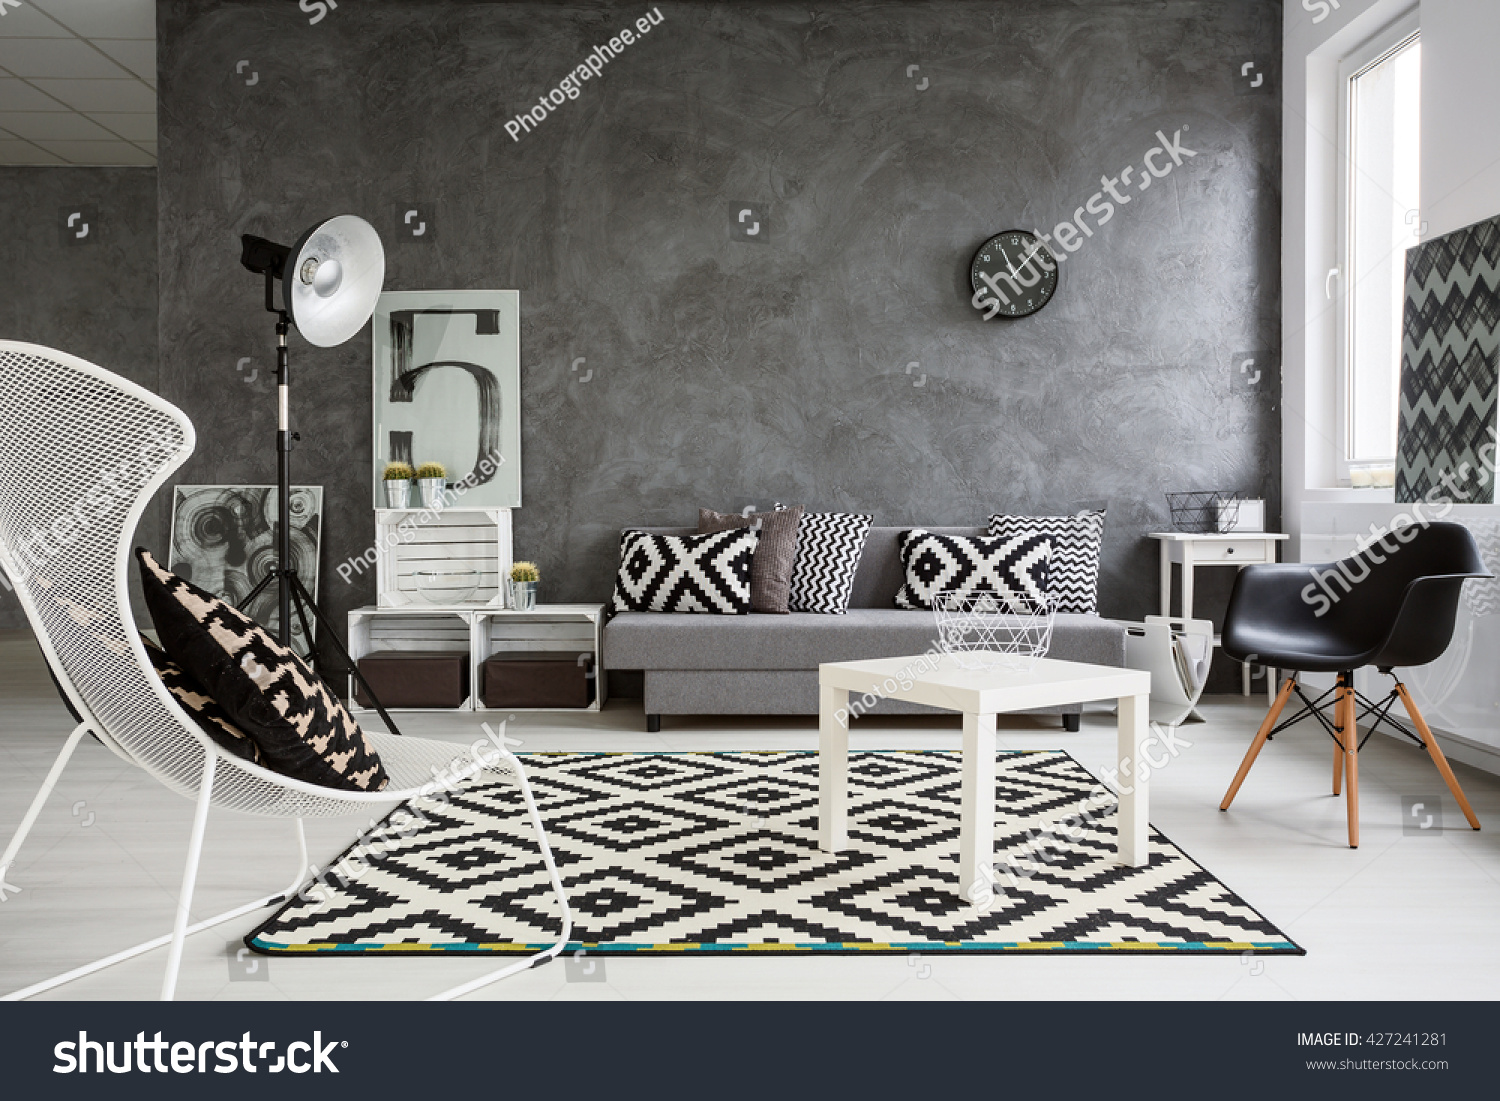 Spacious classic living room in black and white. Interior designed with style #427241281